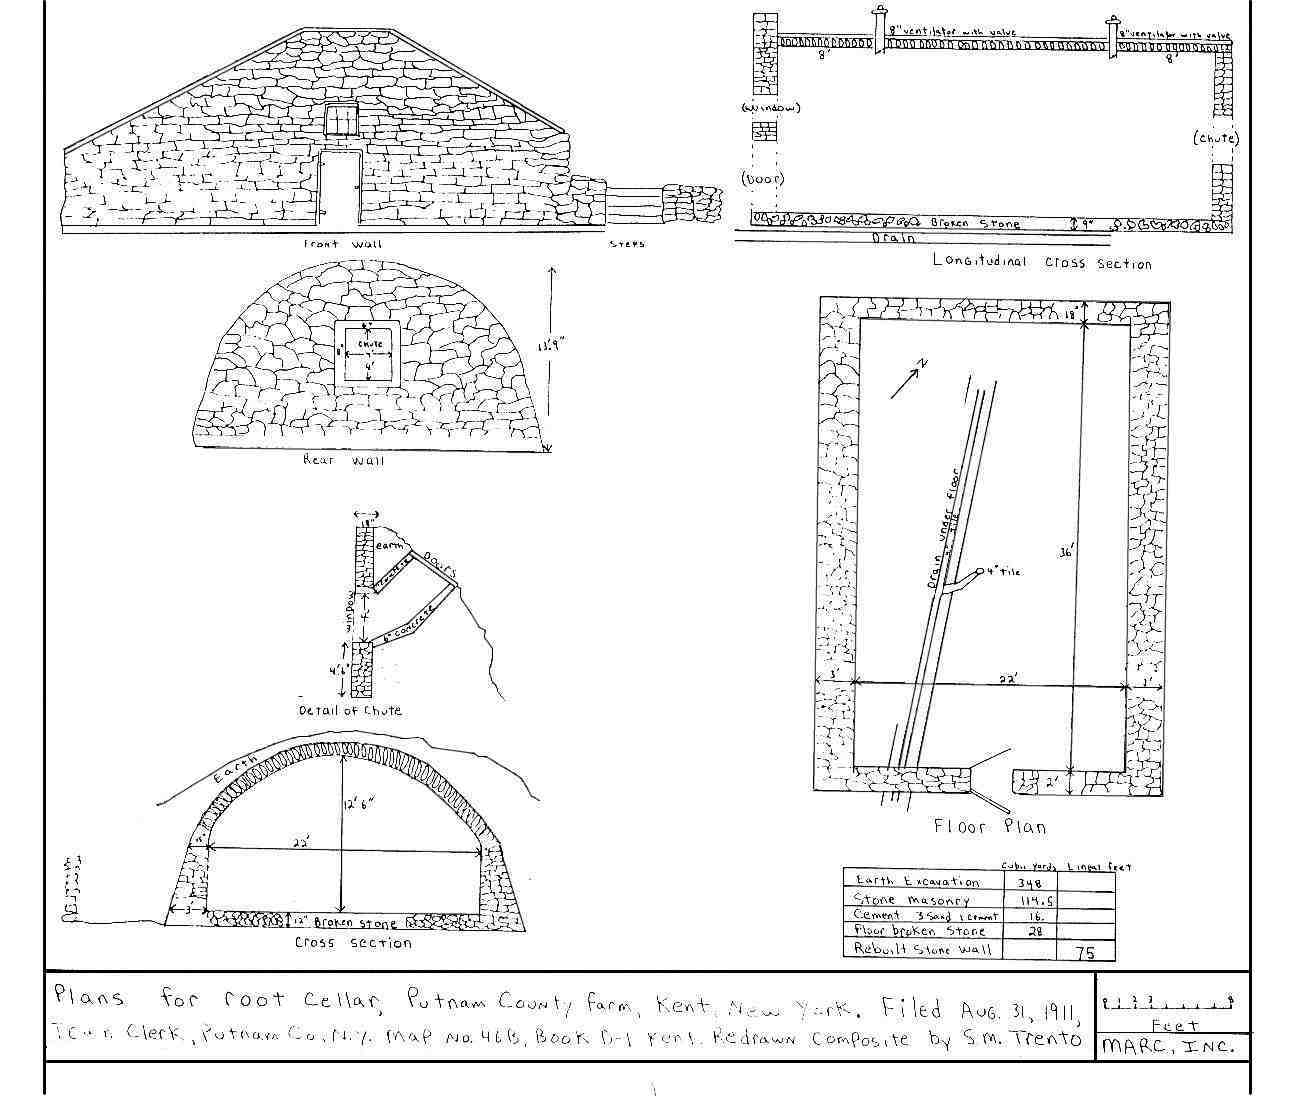 1911 Root Cellar Plan Kent Putnam County NY  sc 1 st  Stone Structures of Northeastern United States & Stones of Northeastern U.S. - Historic - Root Cellars